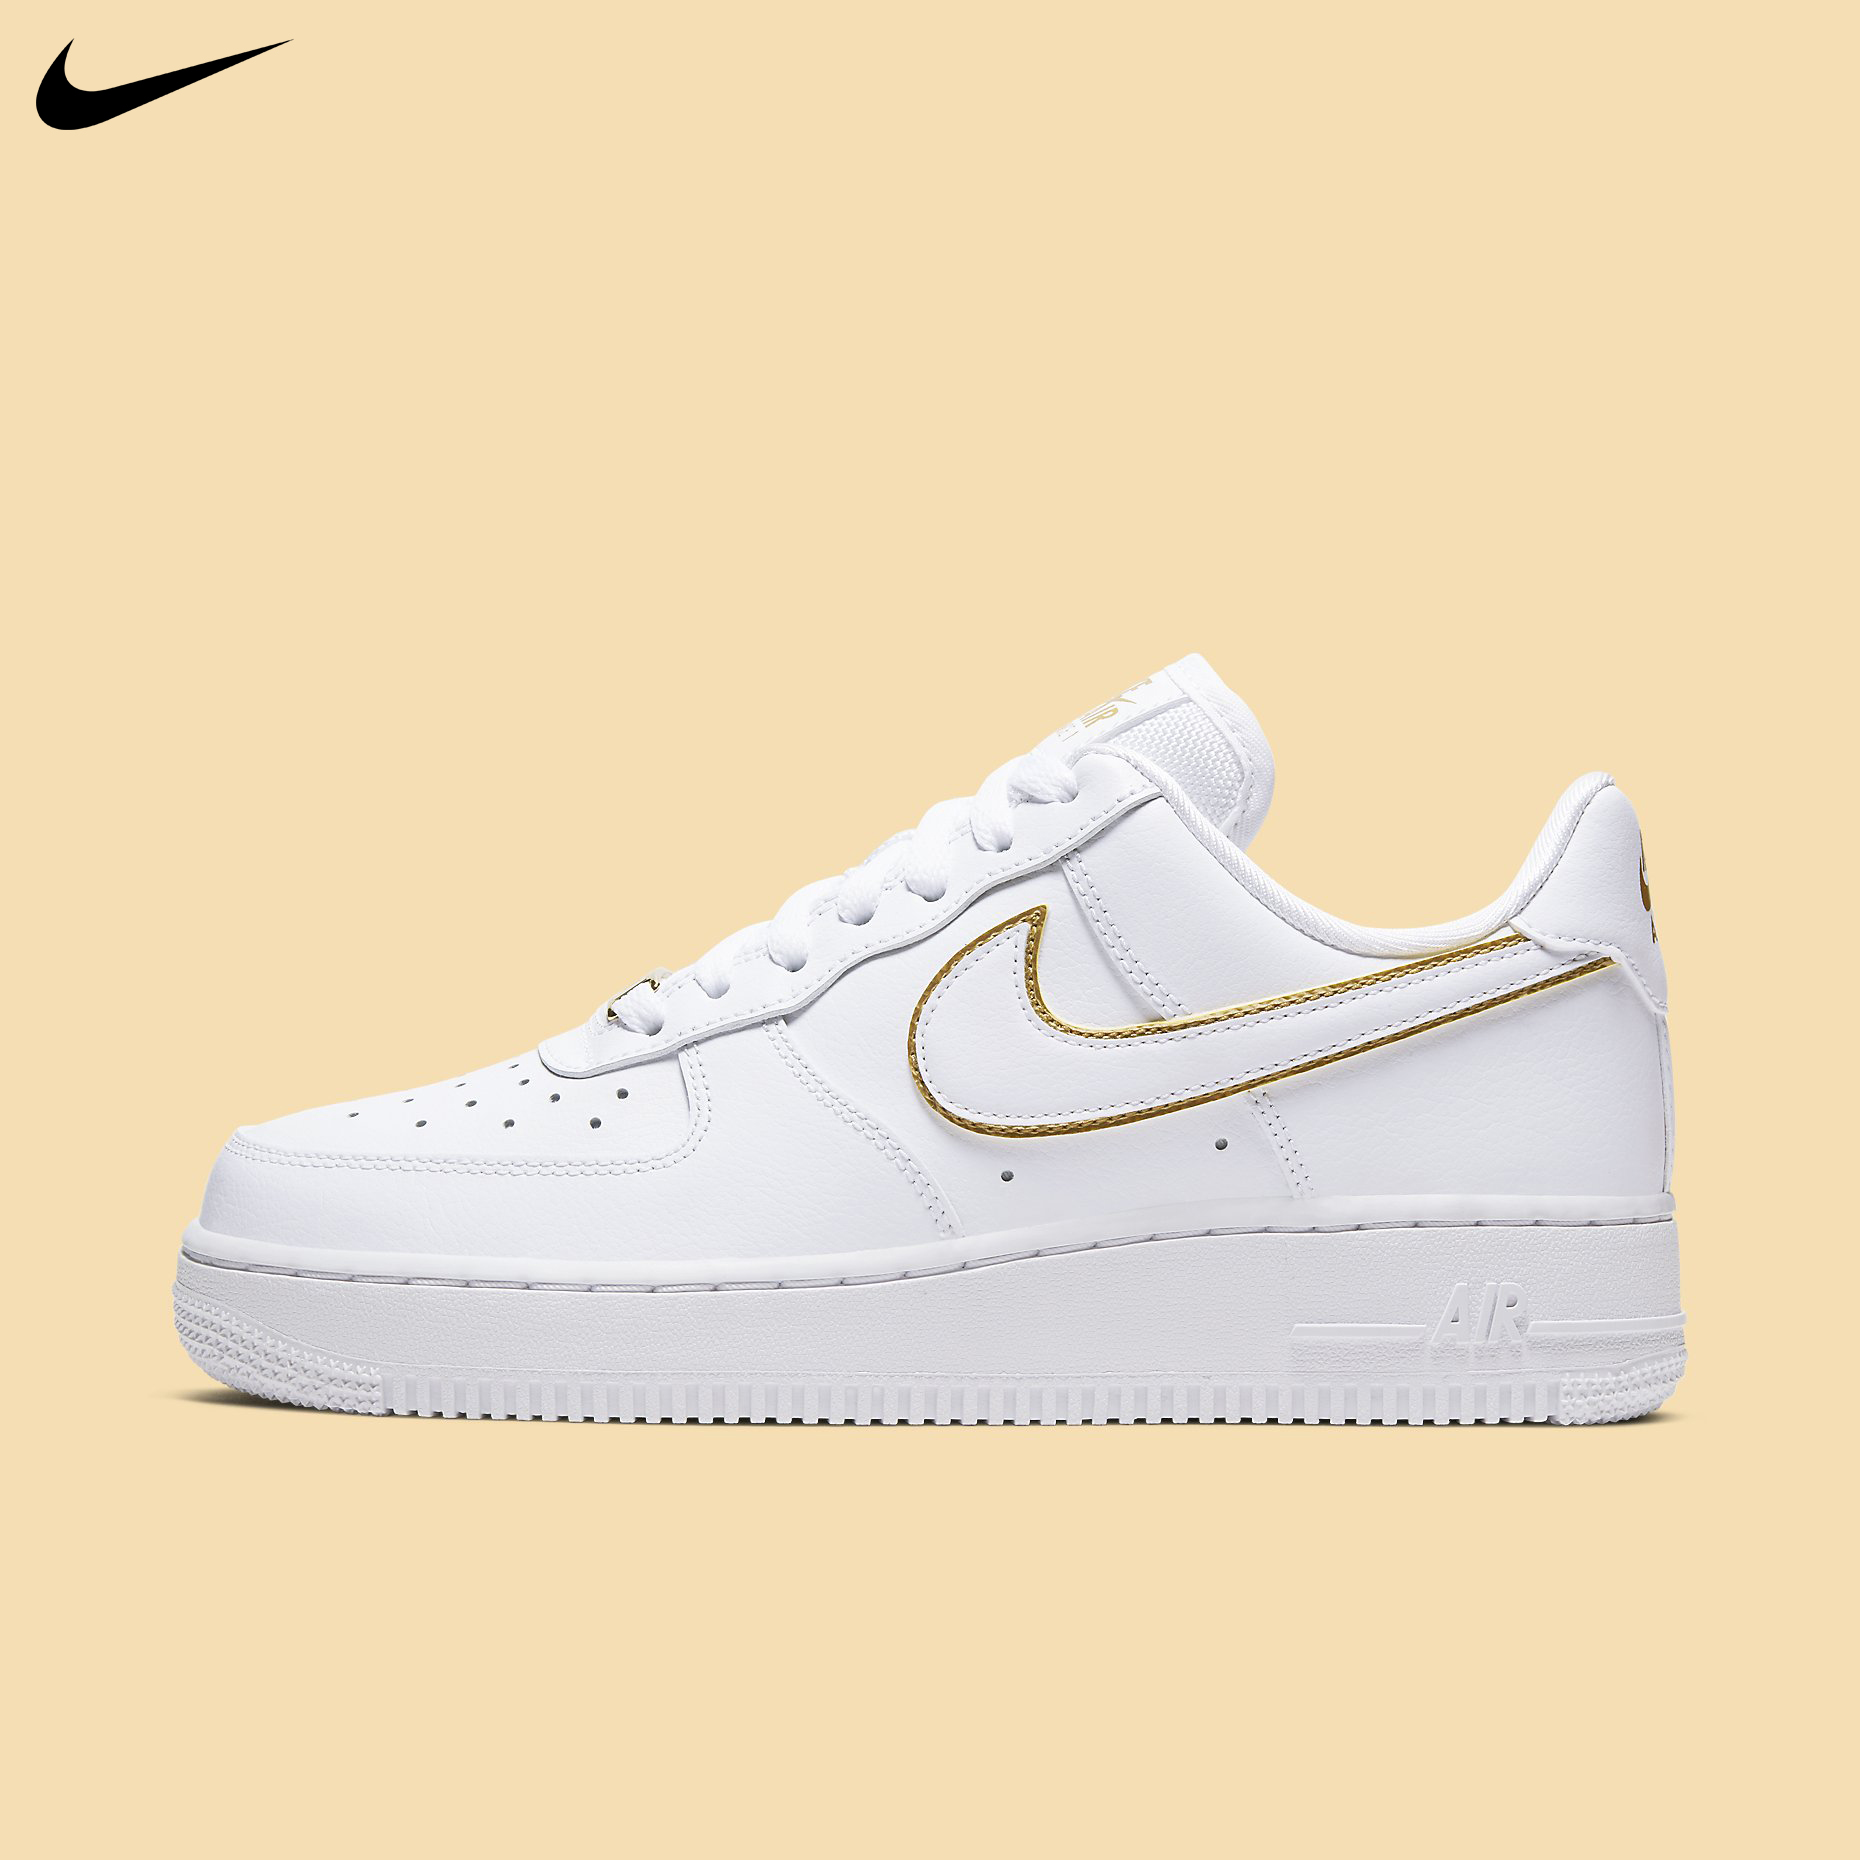 Details about Nike Women's Air Force 1 '07 Essential White Gold Metallic  Casual ESS AO2132-102